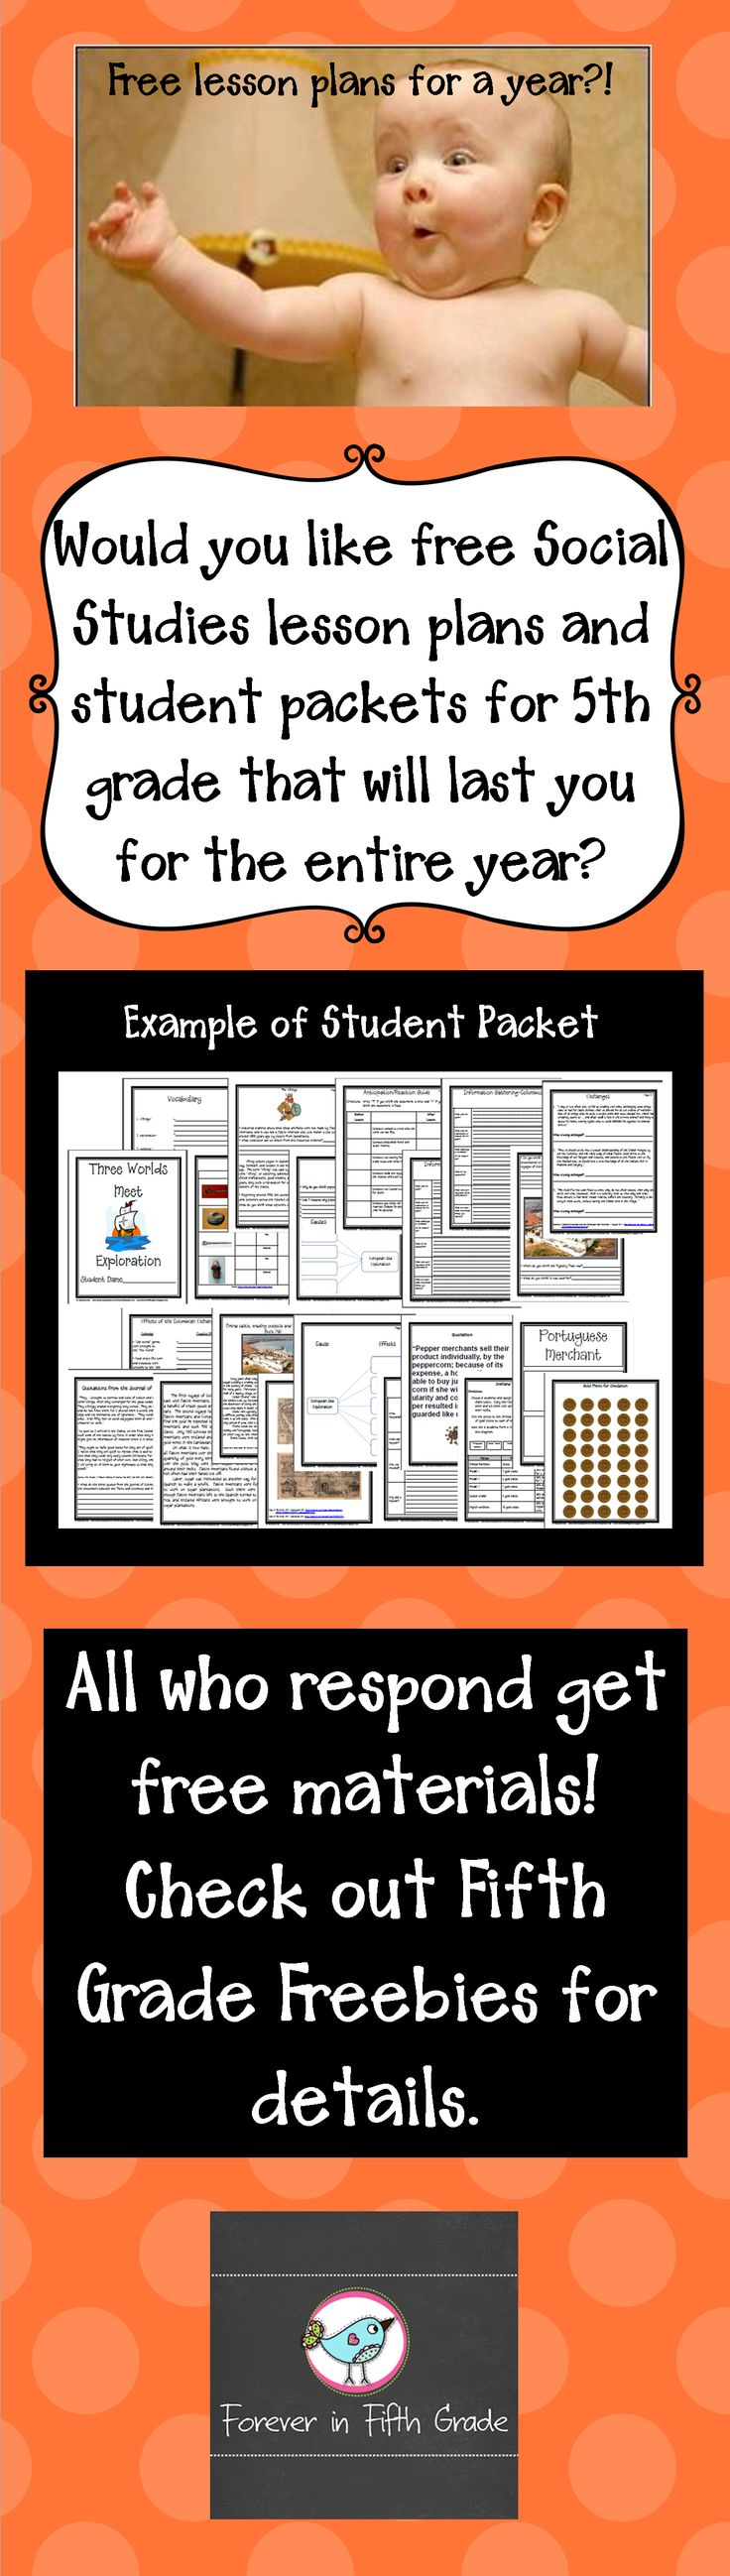 Free social studies lesson plans and student packets for a year!  Check out Fifth Grade Freebies for details.